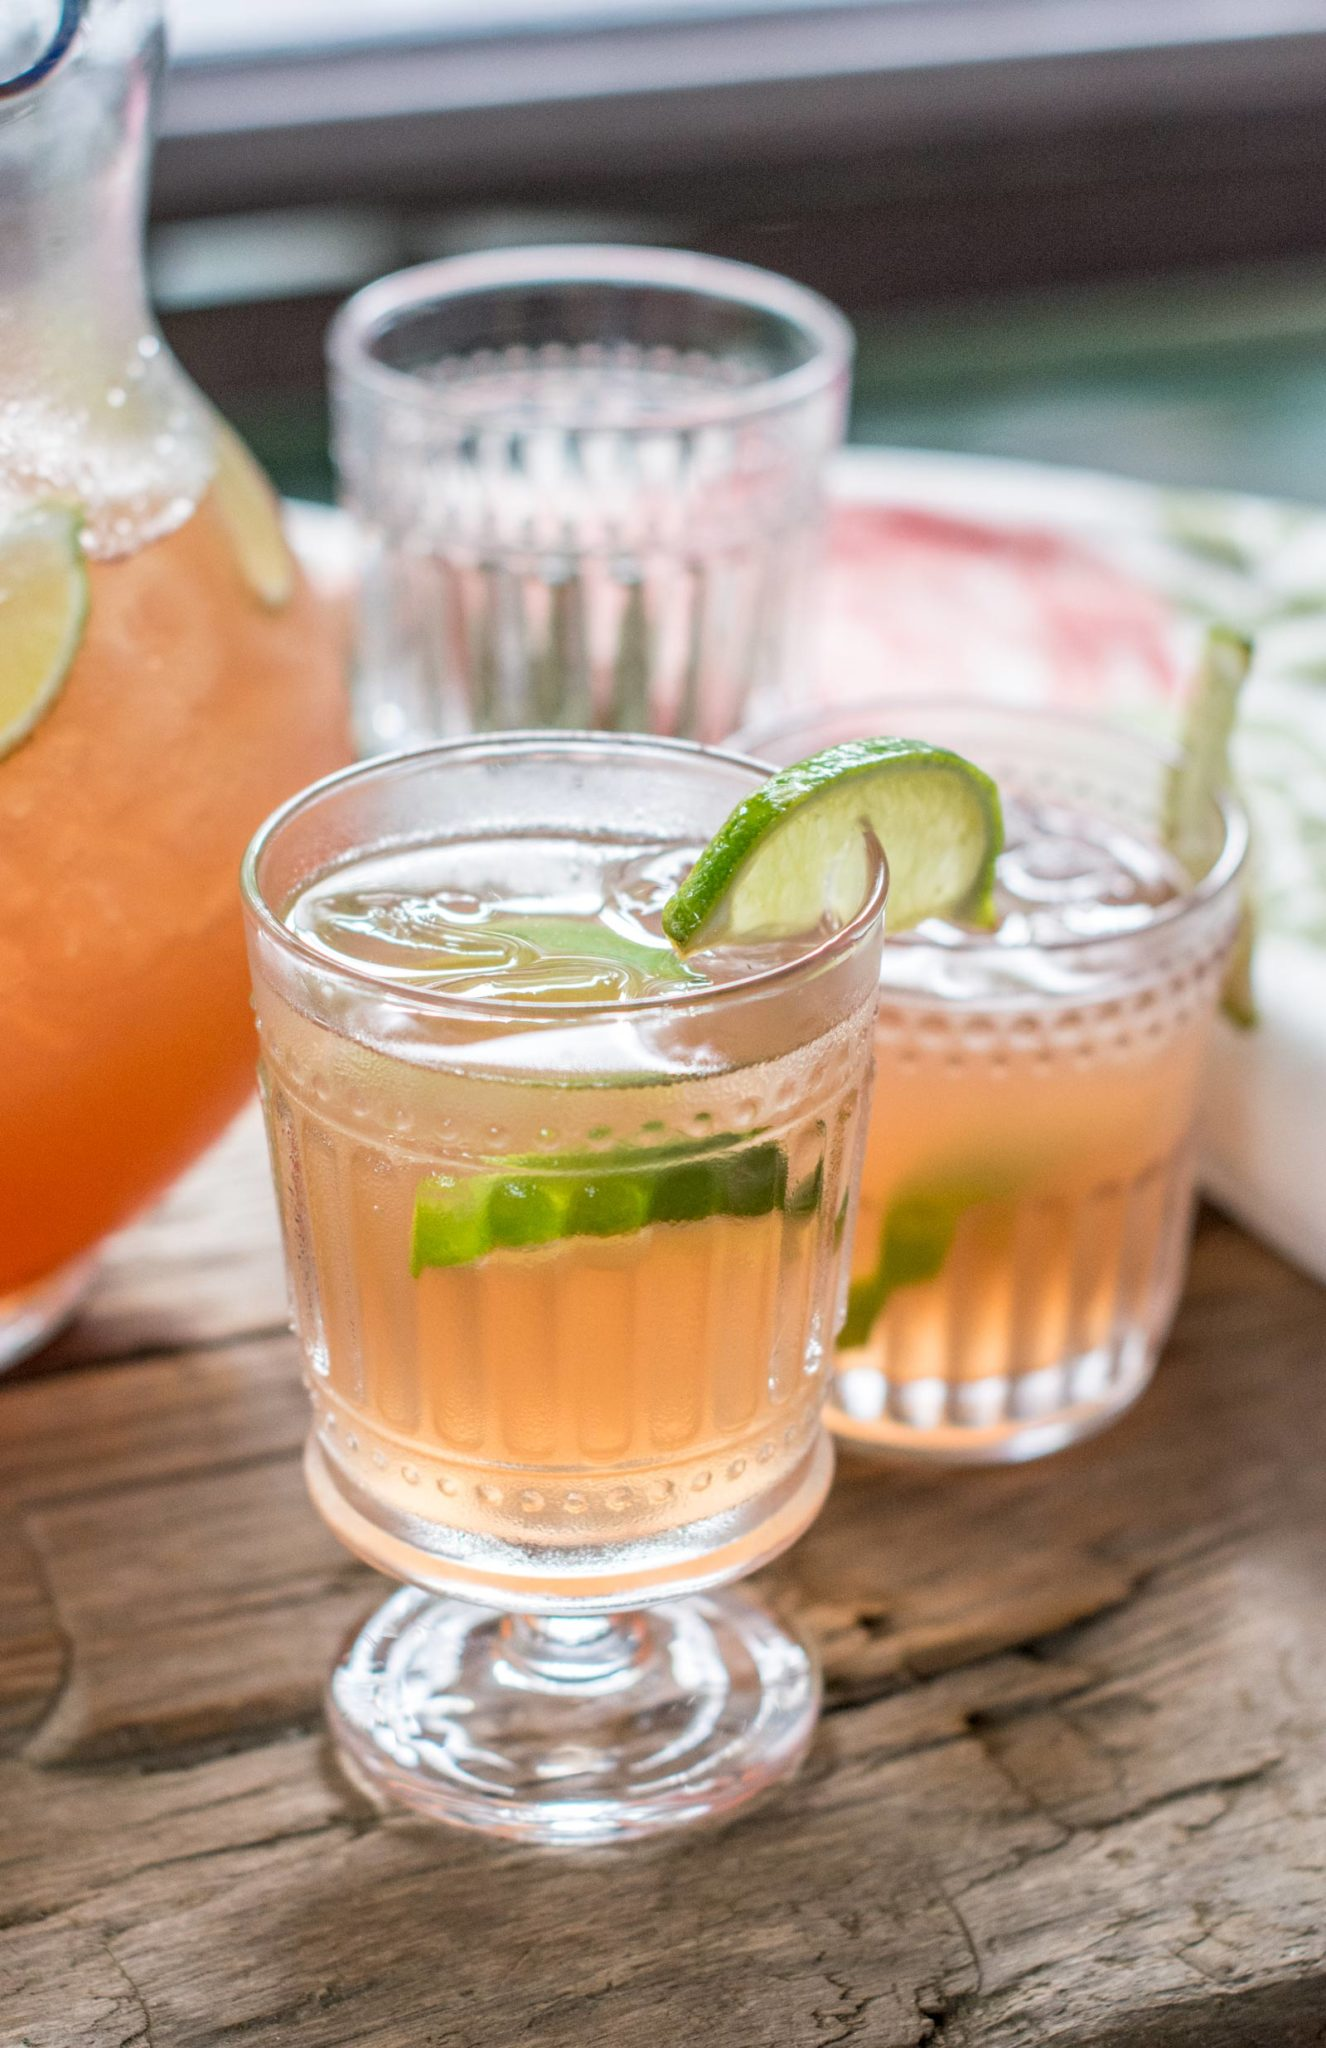 Easy to Make Southern Comfort Cocktail: The Scarlett O'Hara